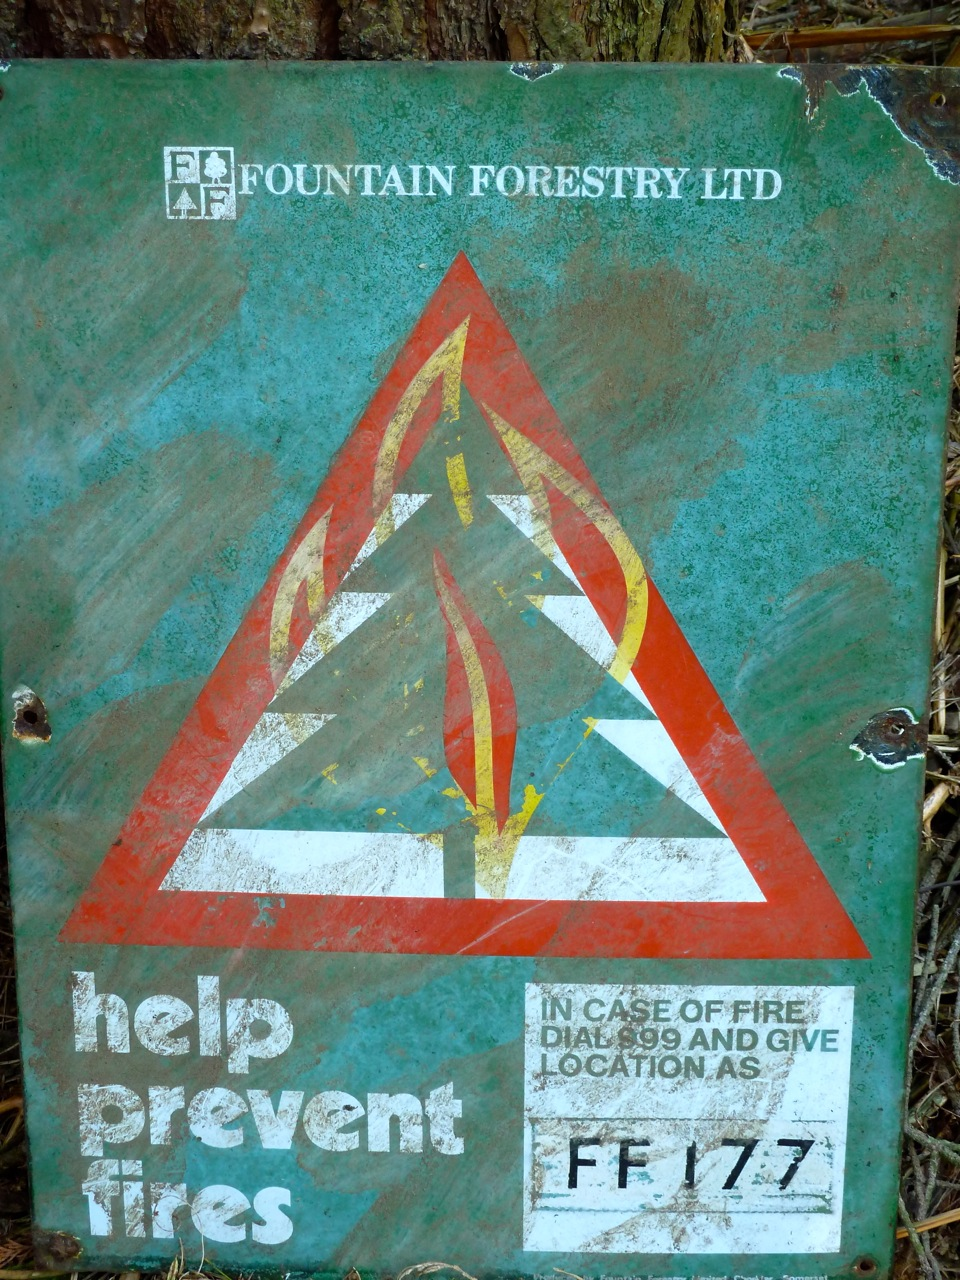 Help prevent forest fires